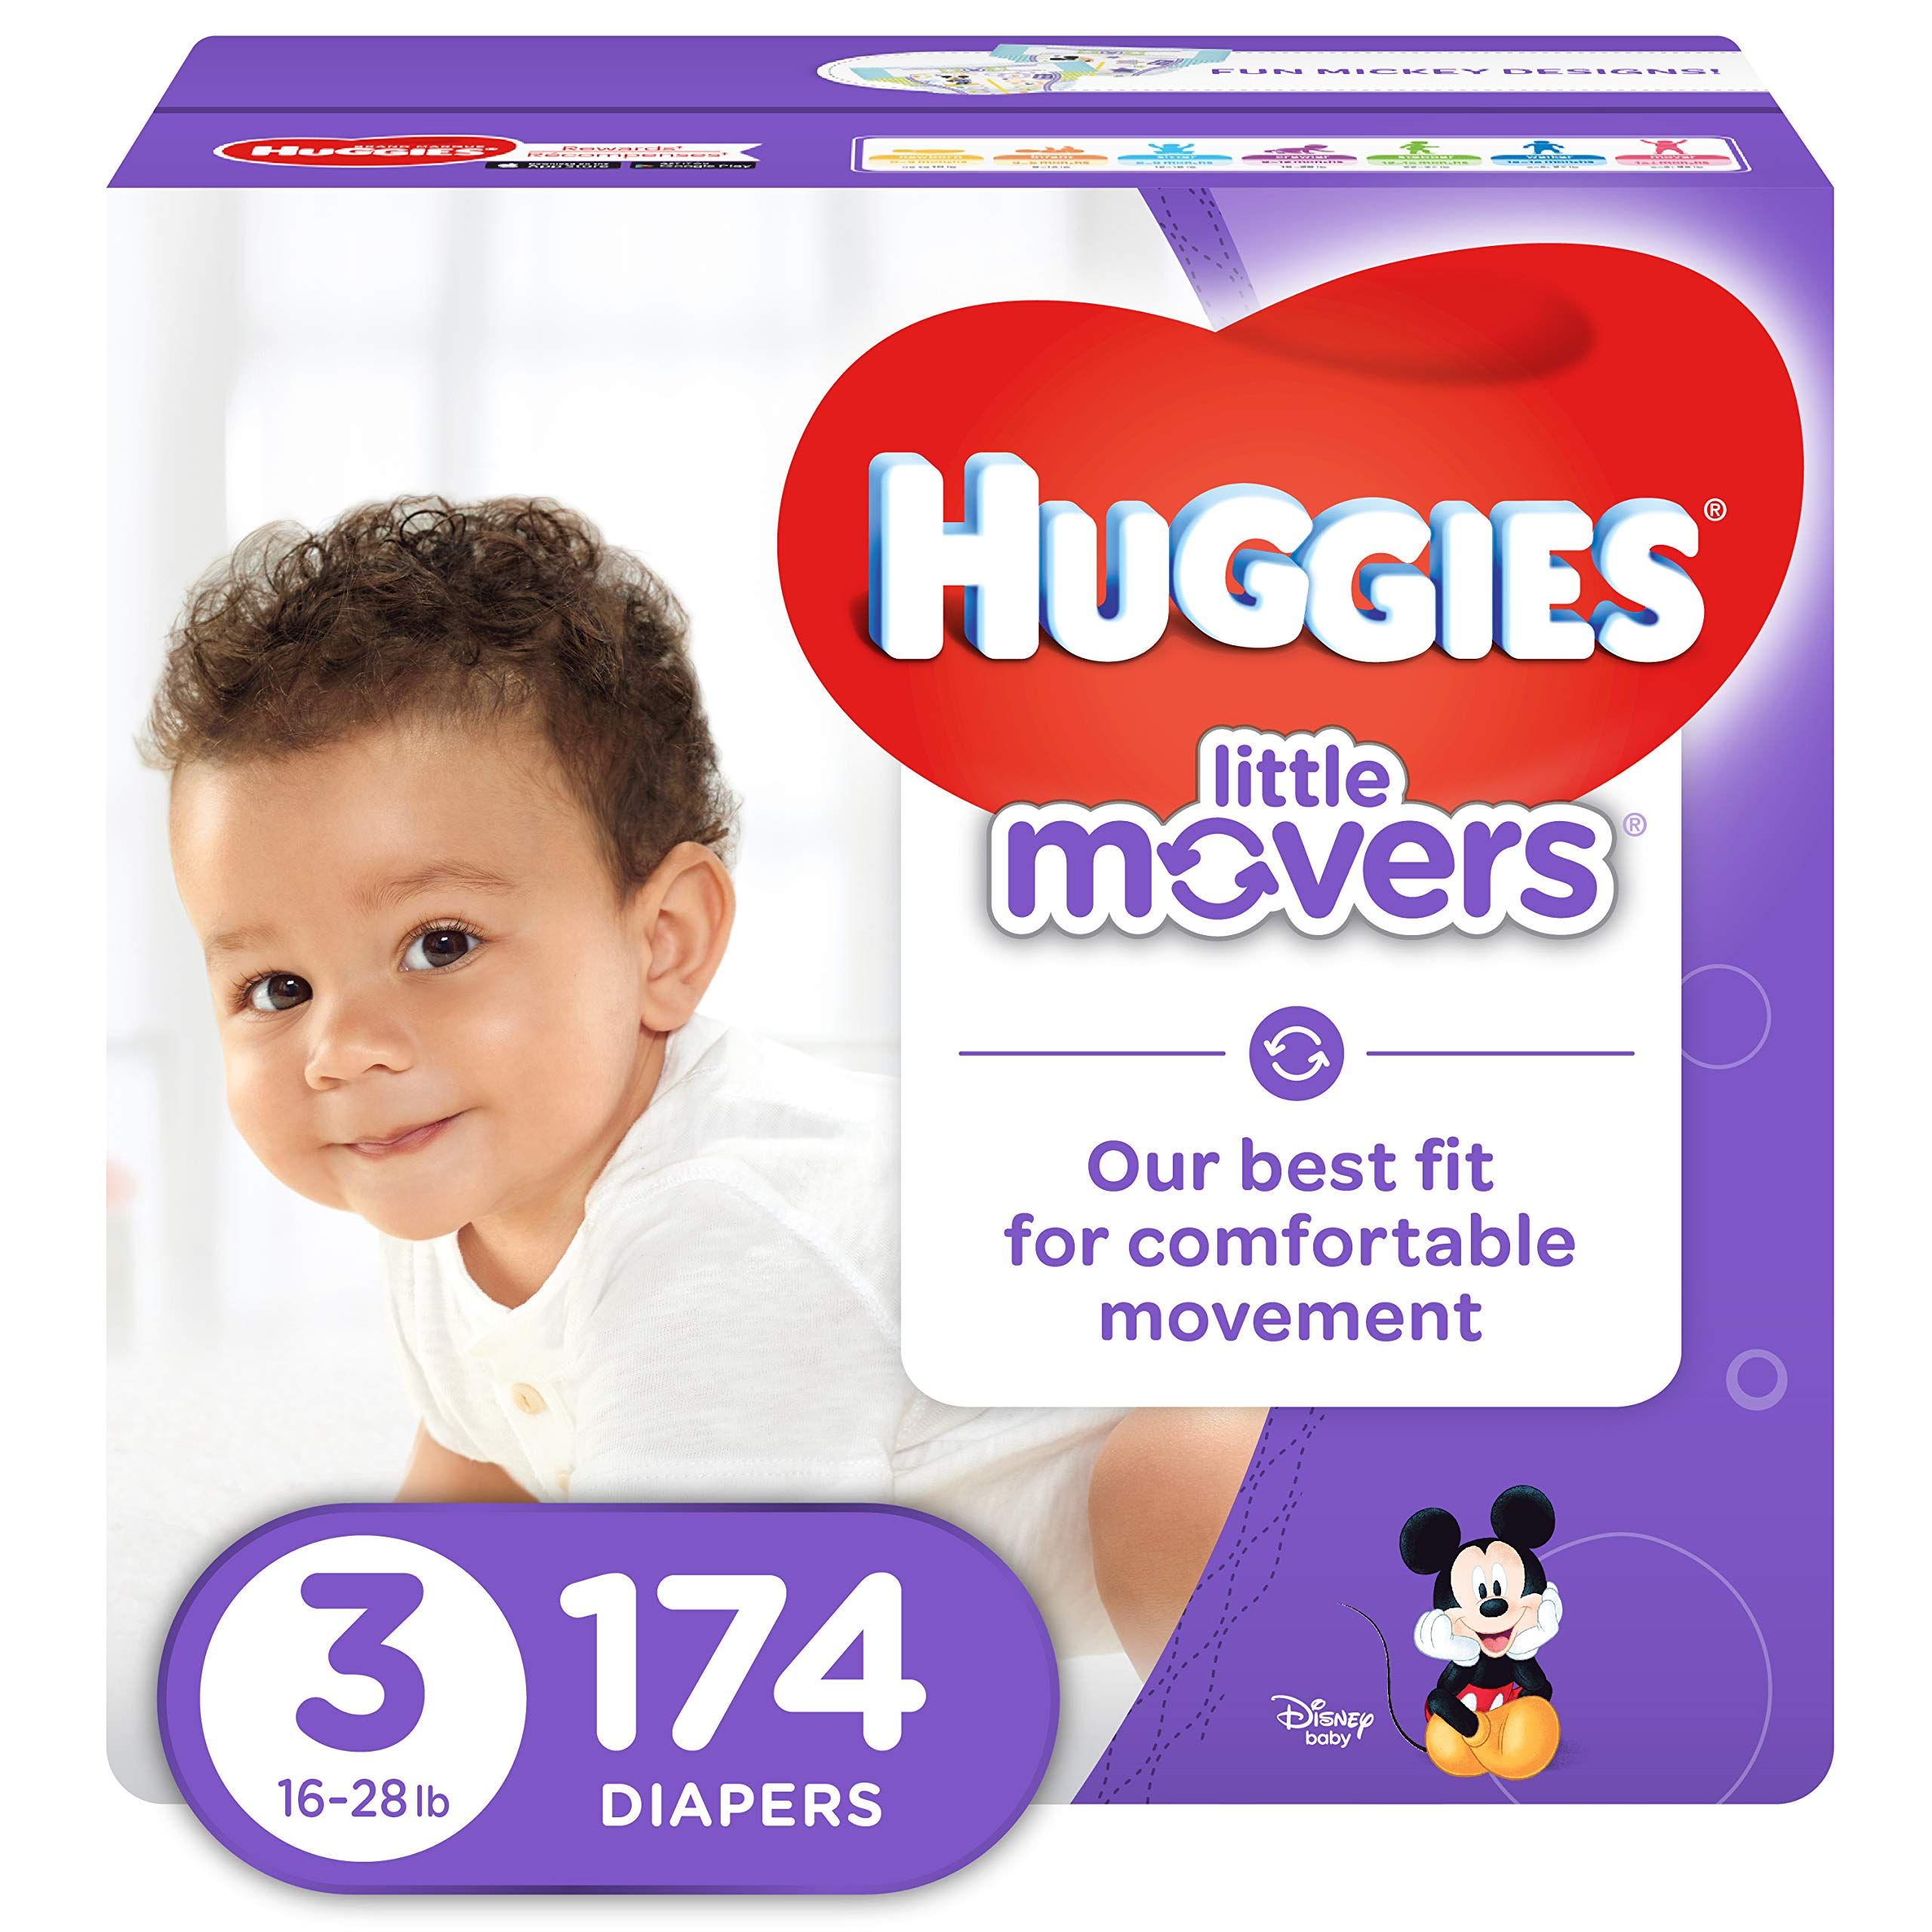 HUGGIES LITTLE MOVERS Active Baby Diapers, Size 3 (fits 16-28 lb.), 174 Ct, ECONOMY PLUS (Packaging May Vary) by HUGGIES